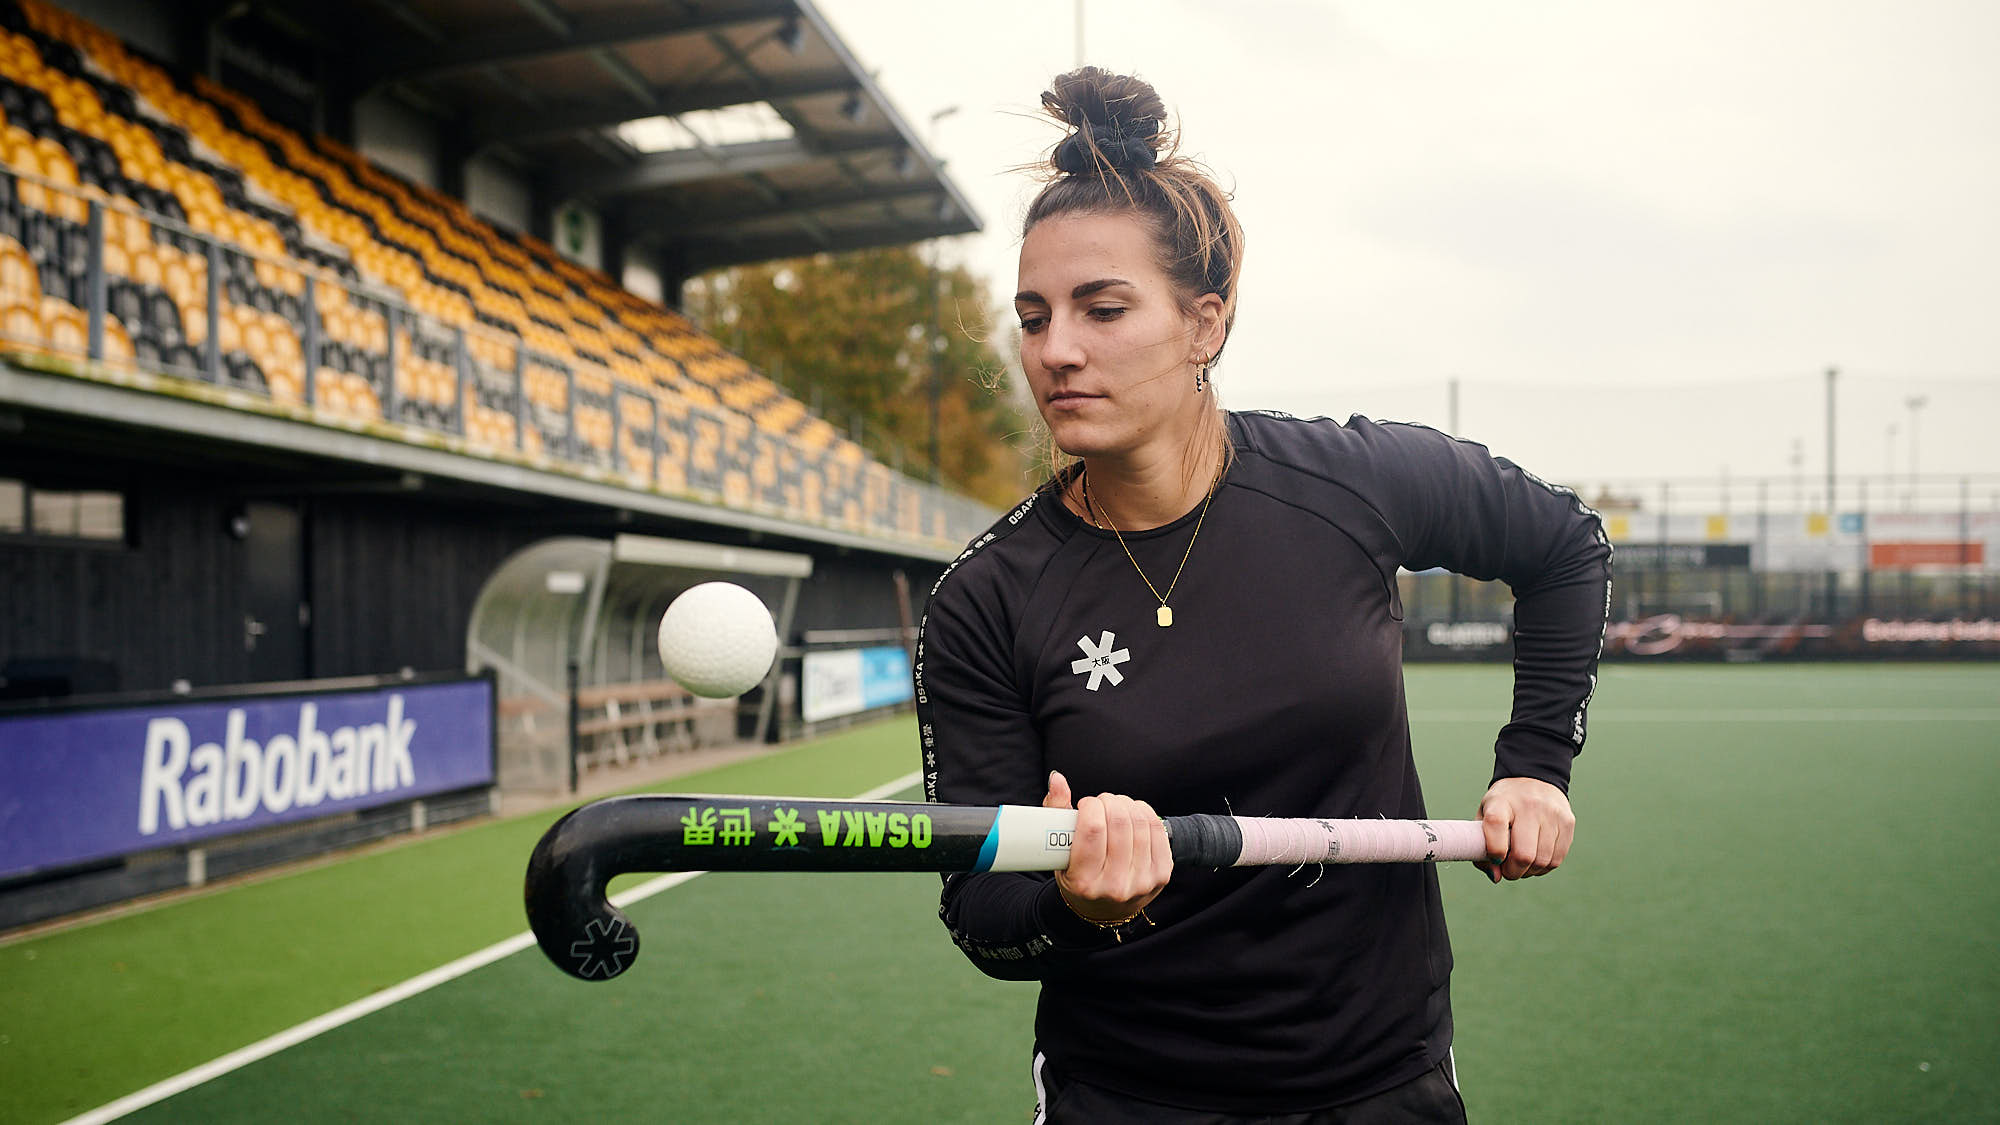 Dutch hockey player Frédérique Matla handling a ball